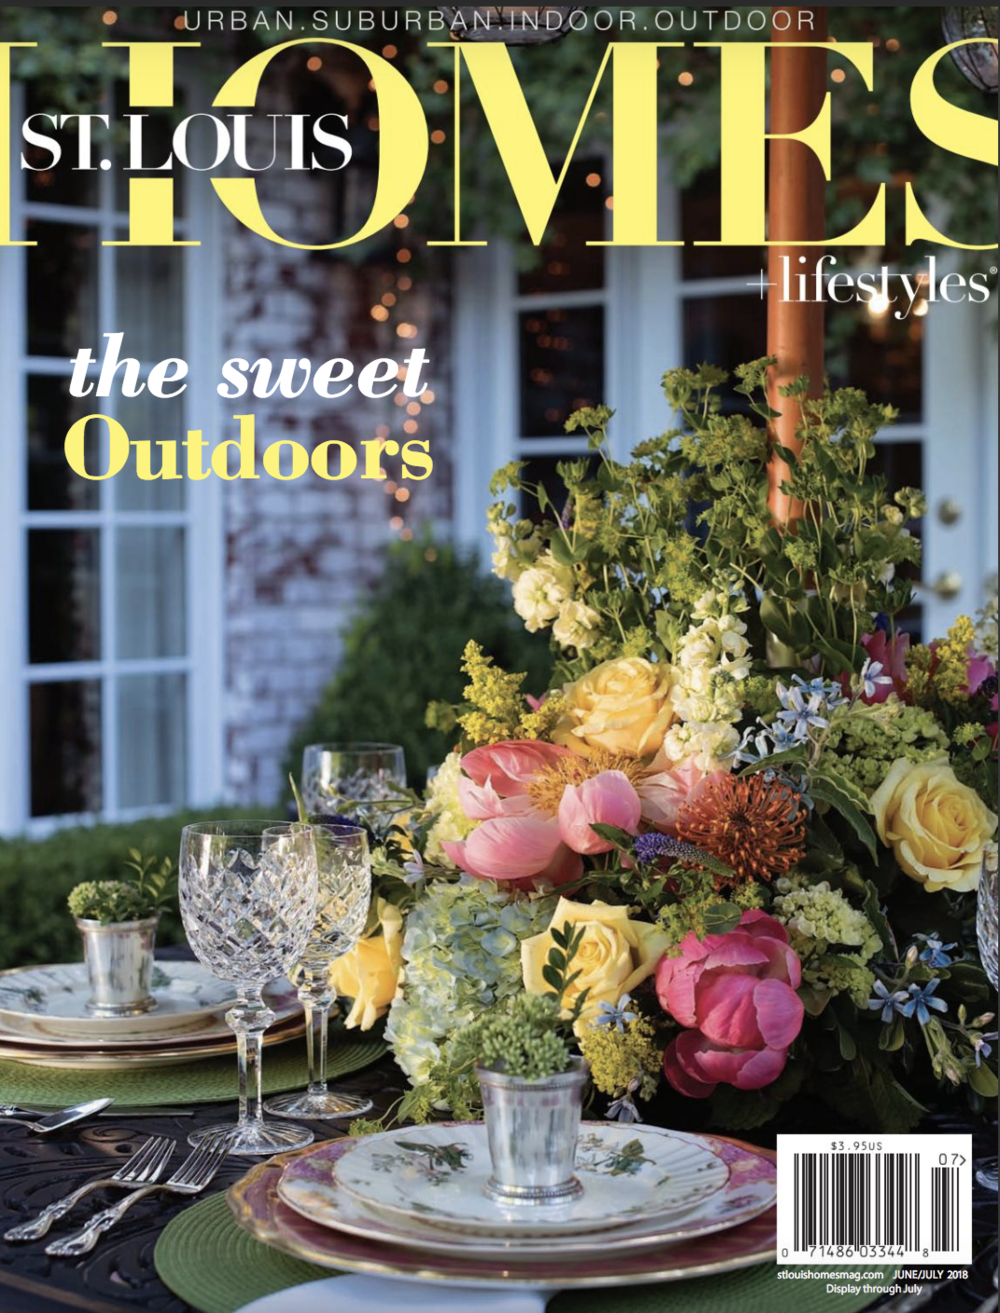 St. Louis Homes & Lifestyles- June/July 2018